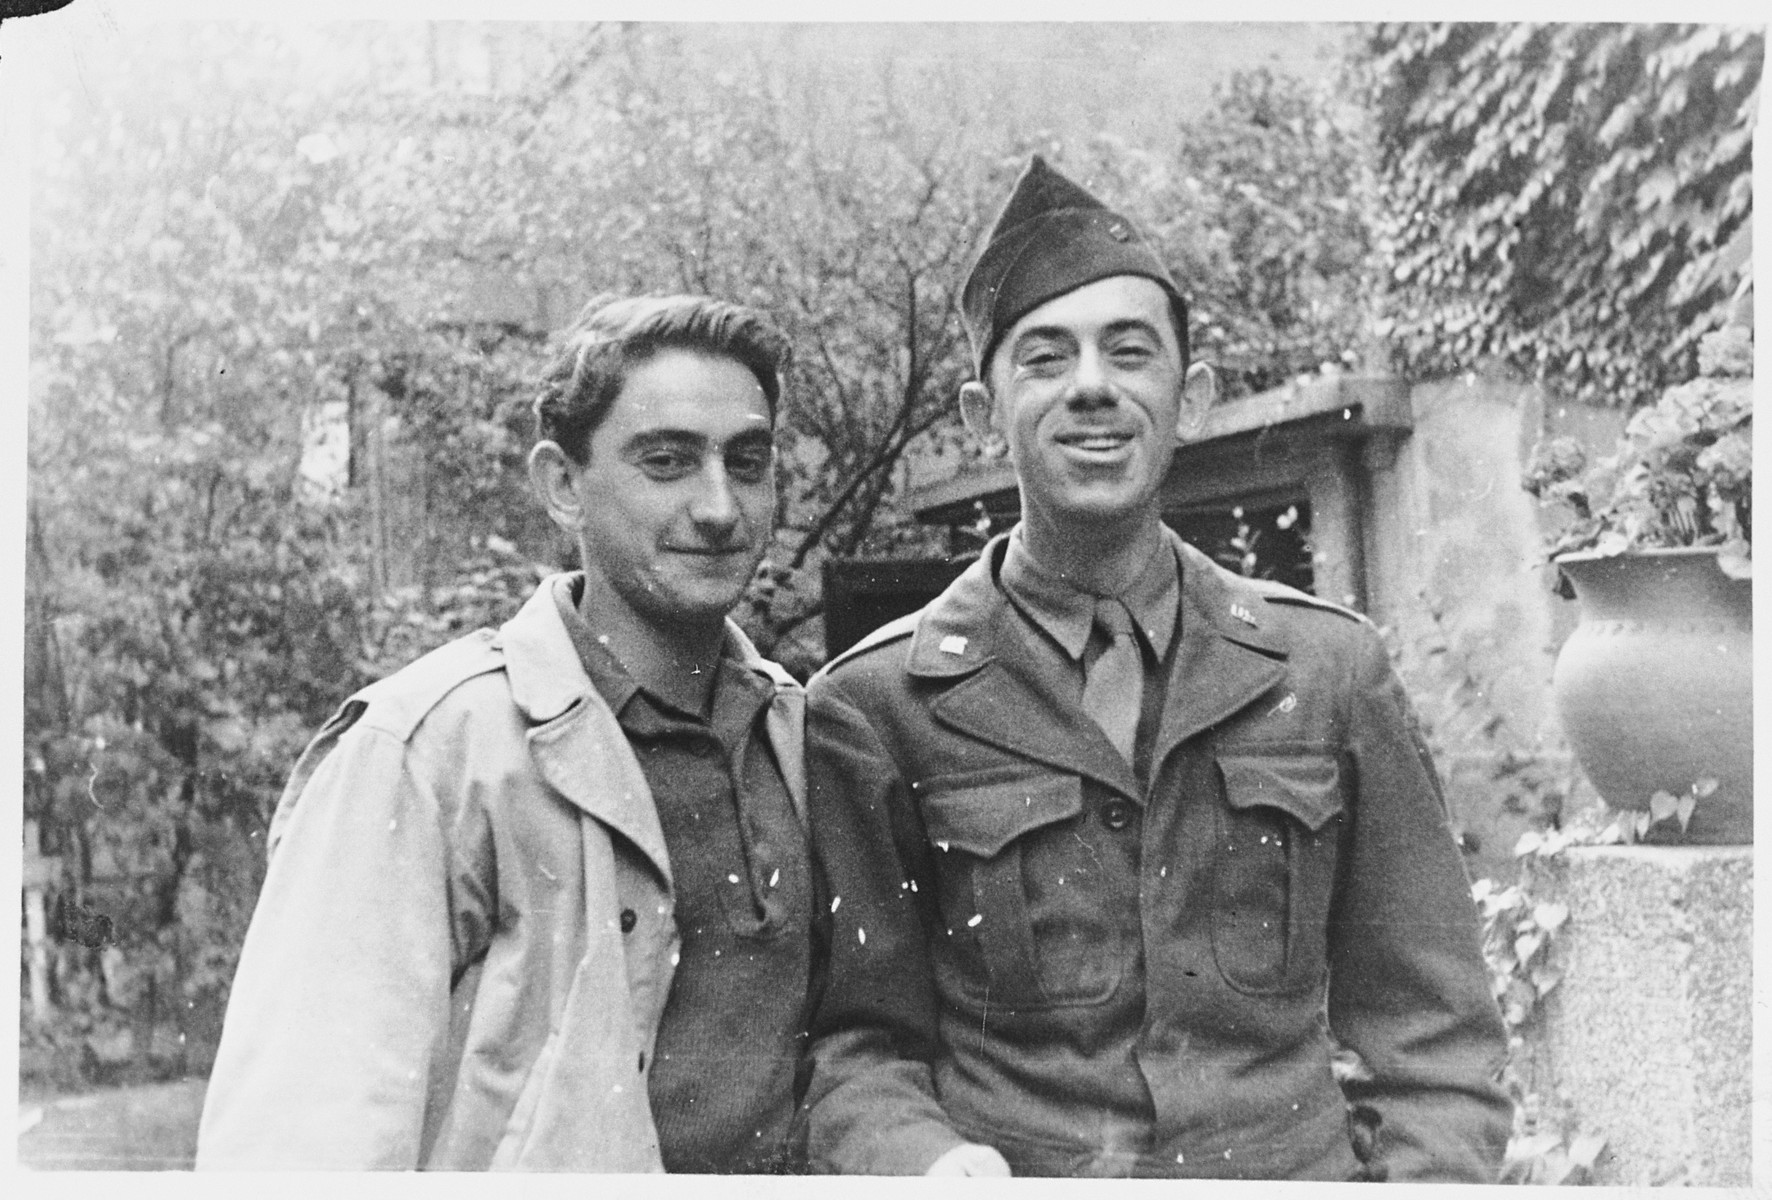 Shmuel Shalkovsky poses with an American Jewish soldier who had befriended him.